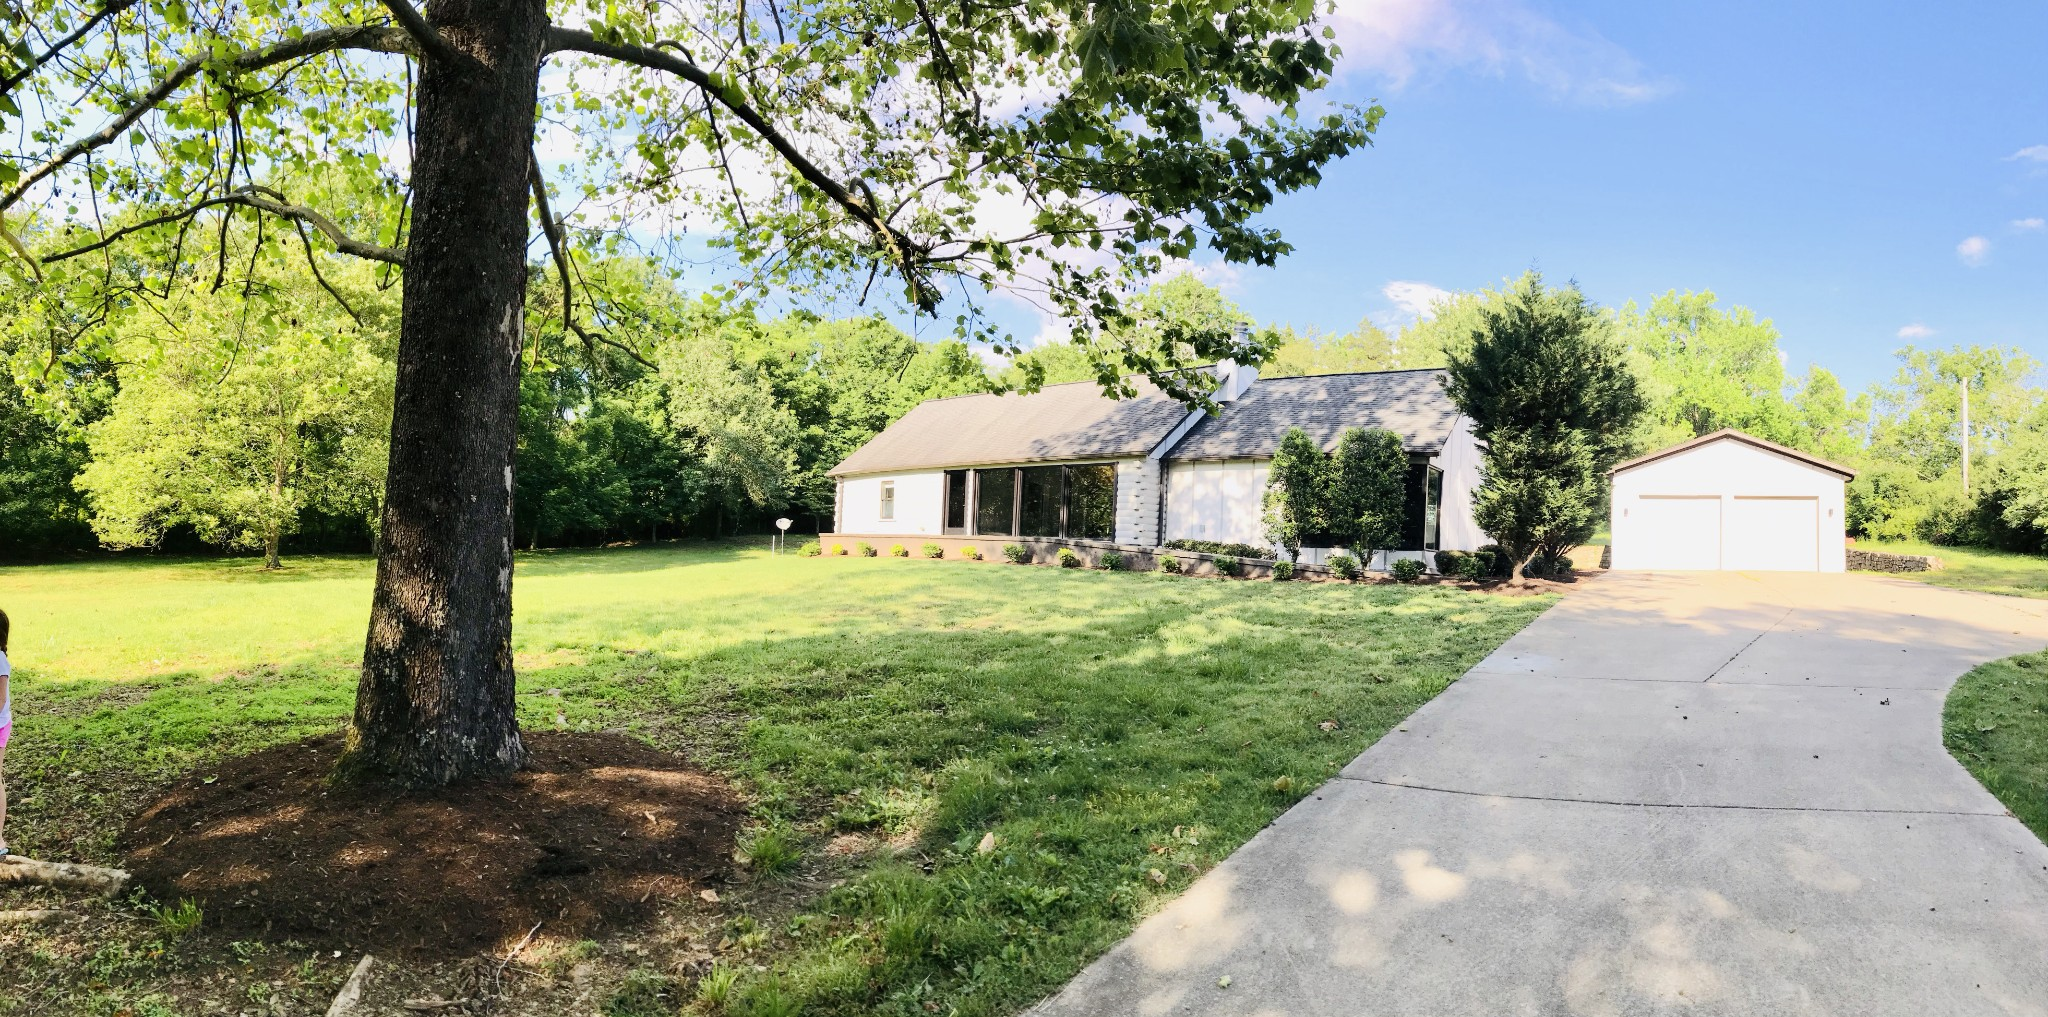 Rare gem hidden in a peaceful cul de sac on Ragsdale Road in Brentwood! Completely renovated! Truly one of a kind, modern meets rustic home on a serene property w/stained concrete floors,travertine counter tops, 2 master walk in closets, floating vanity, over sized open master shower, master fireplace, floor to ceiling windows th-out. 24' ceilings, Viking frdg/premium appl, 3rd bed is a loft. Lots of storage! Amazing home!